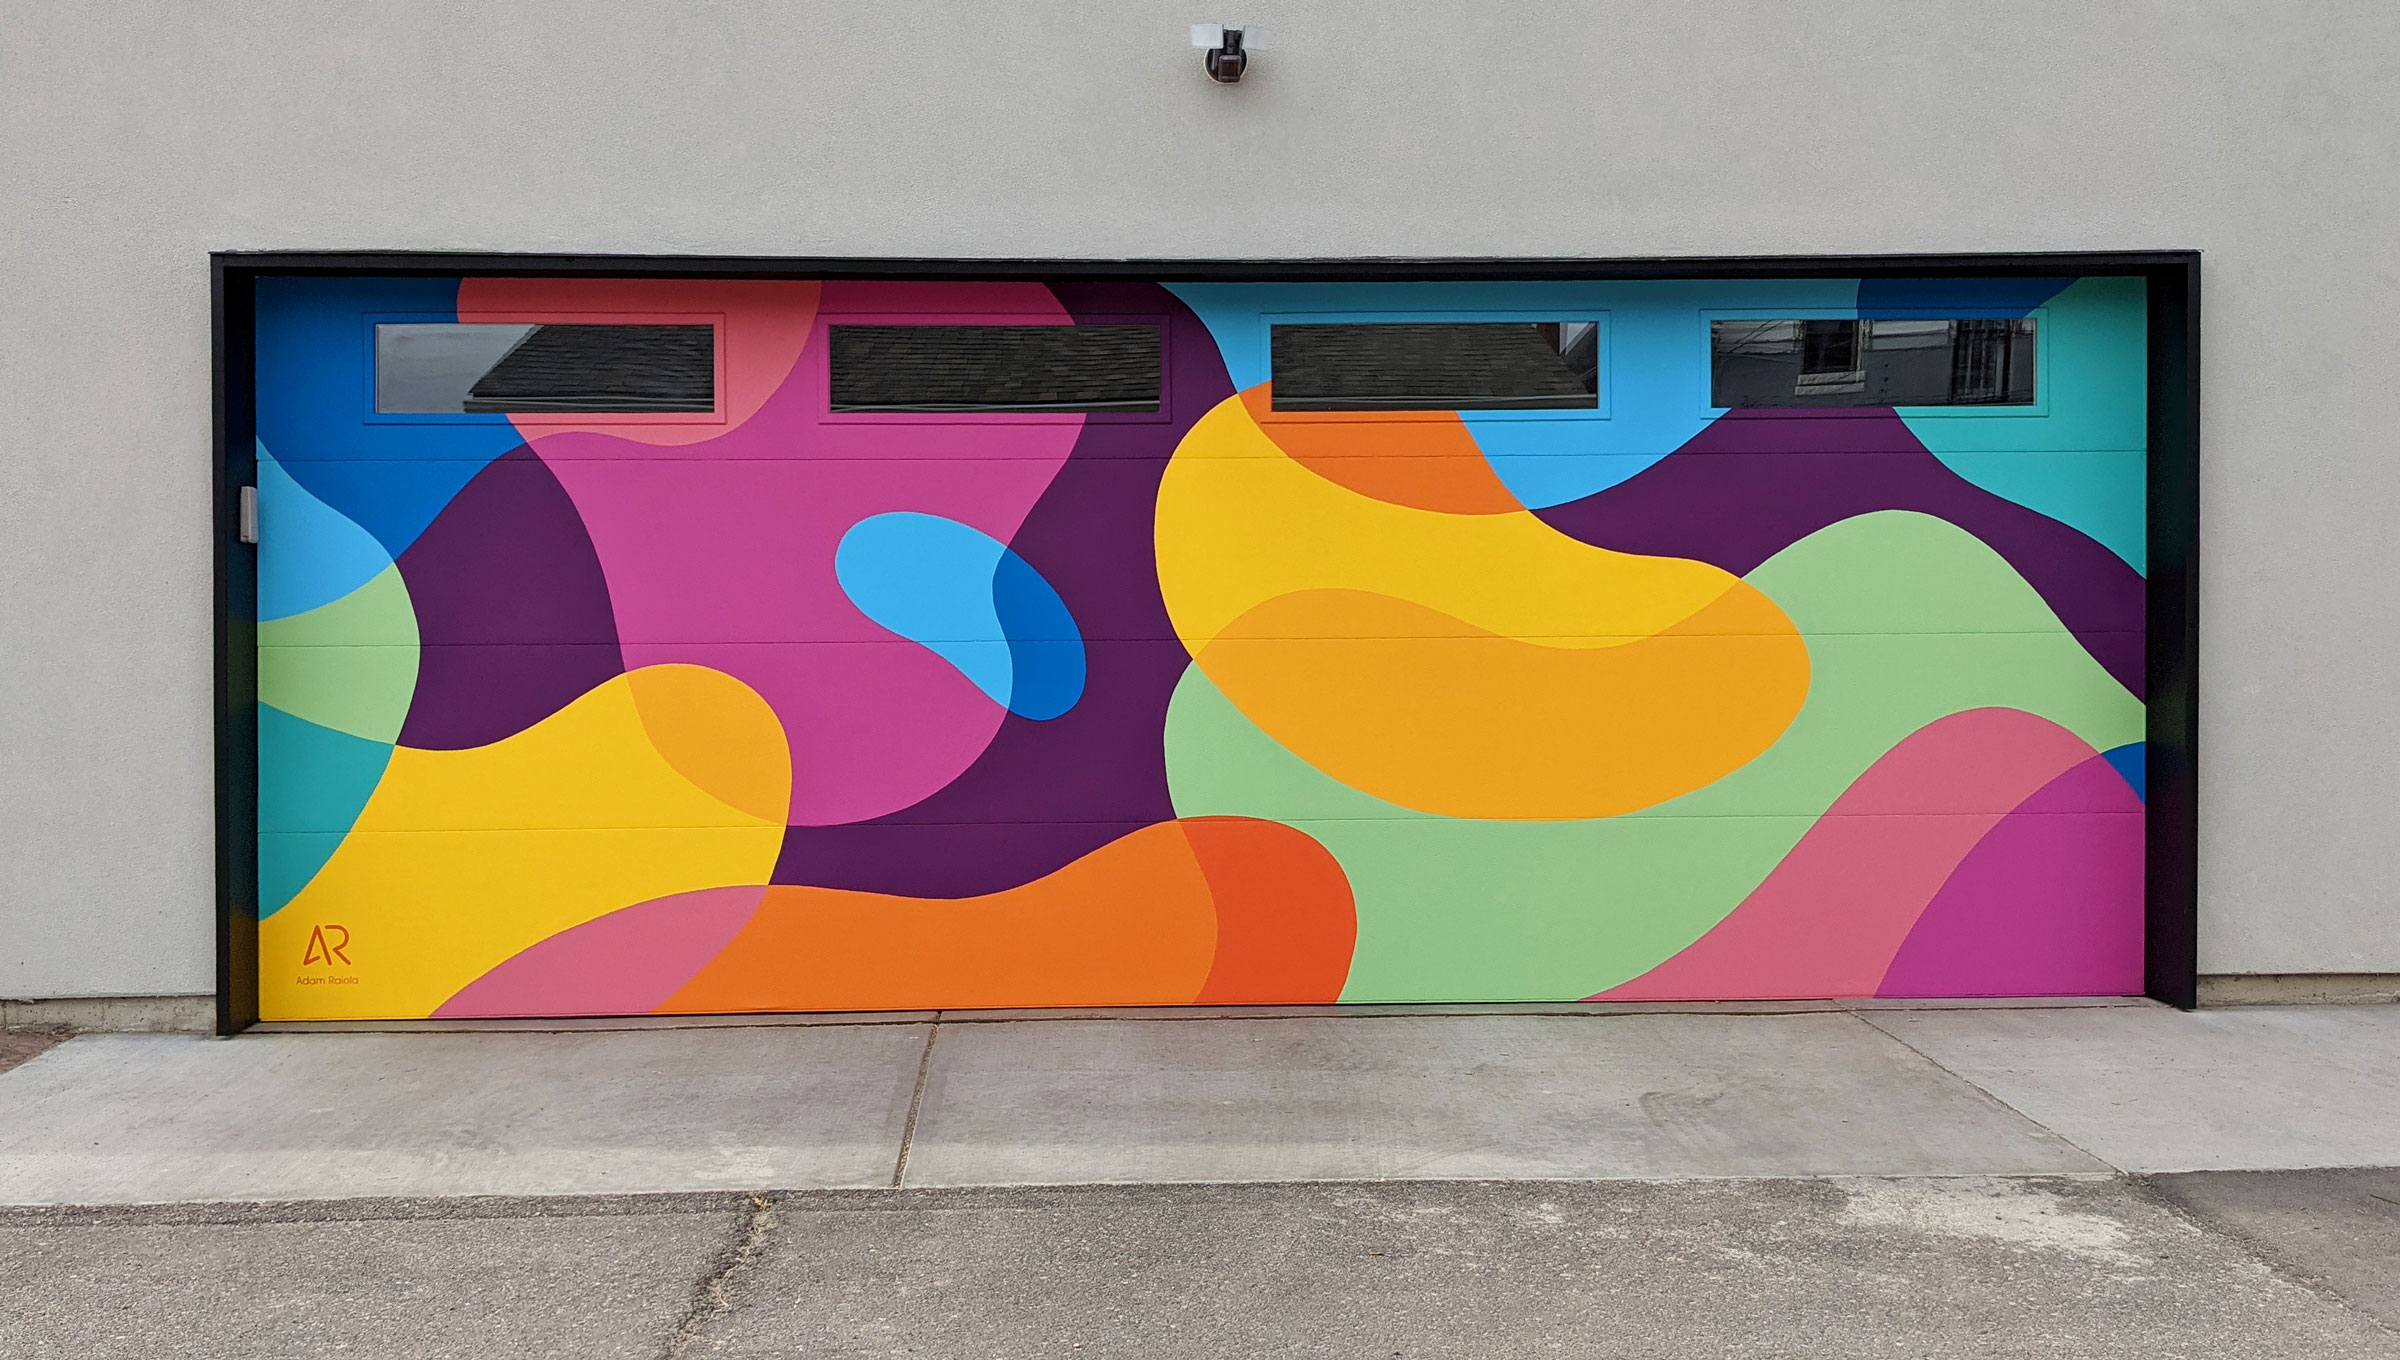 A mural painted on a garage door with abstract colored blobs